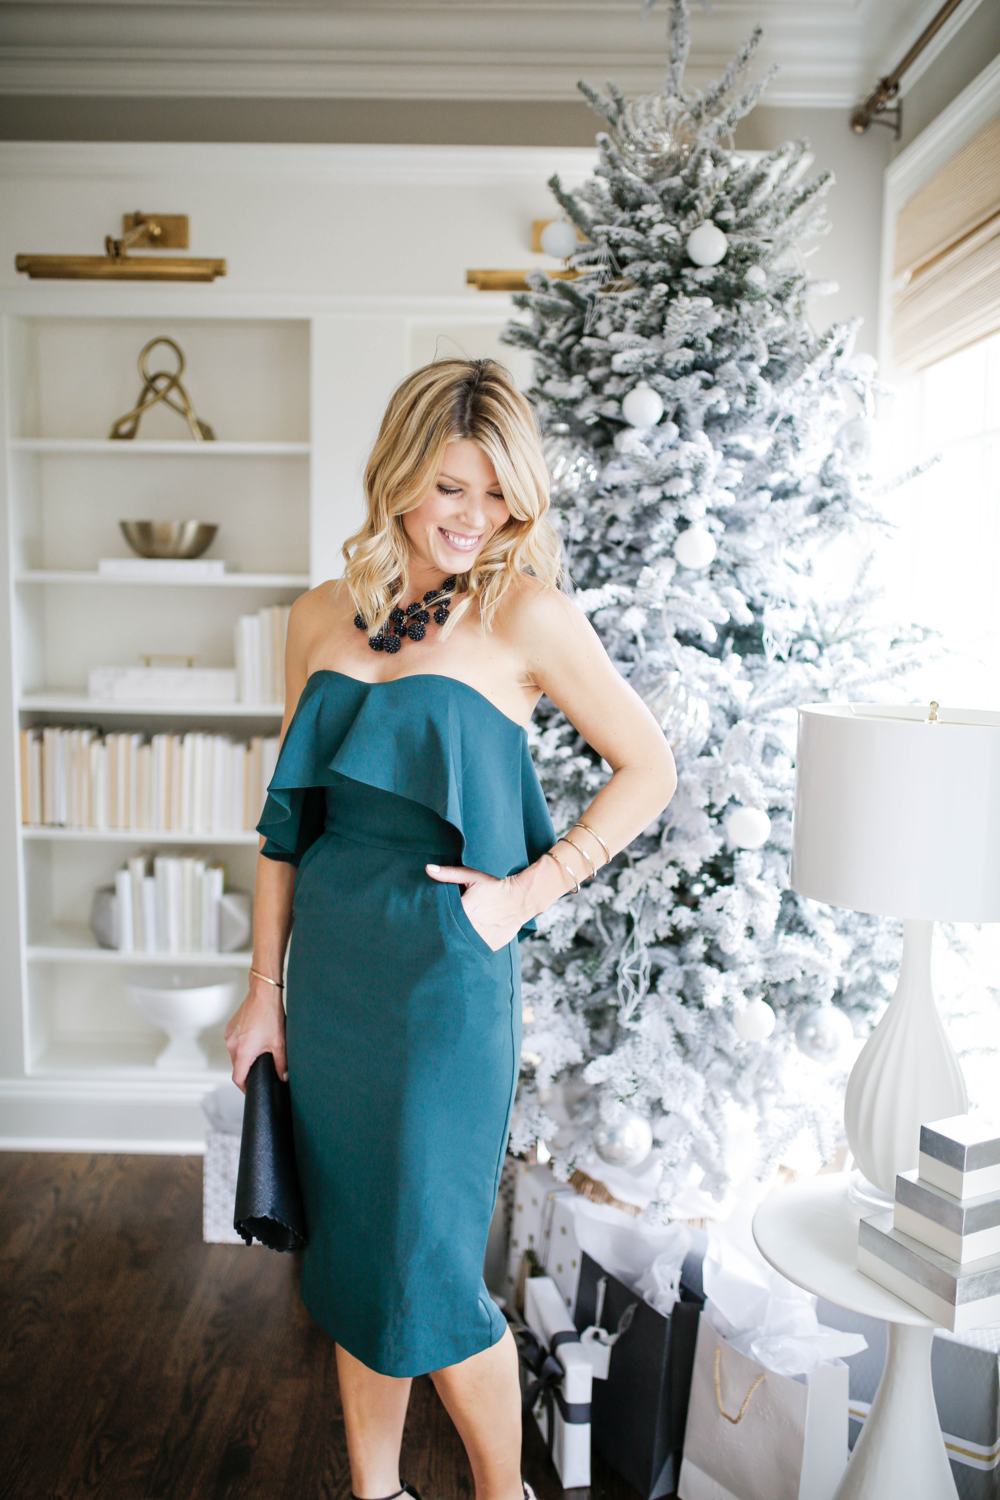 What to wear to a holiday office party, a chic and sophisticated dress for a holiday office party